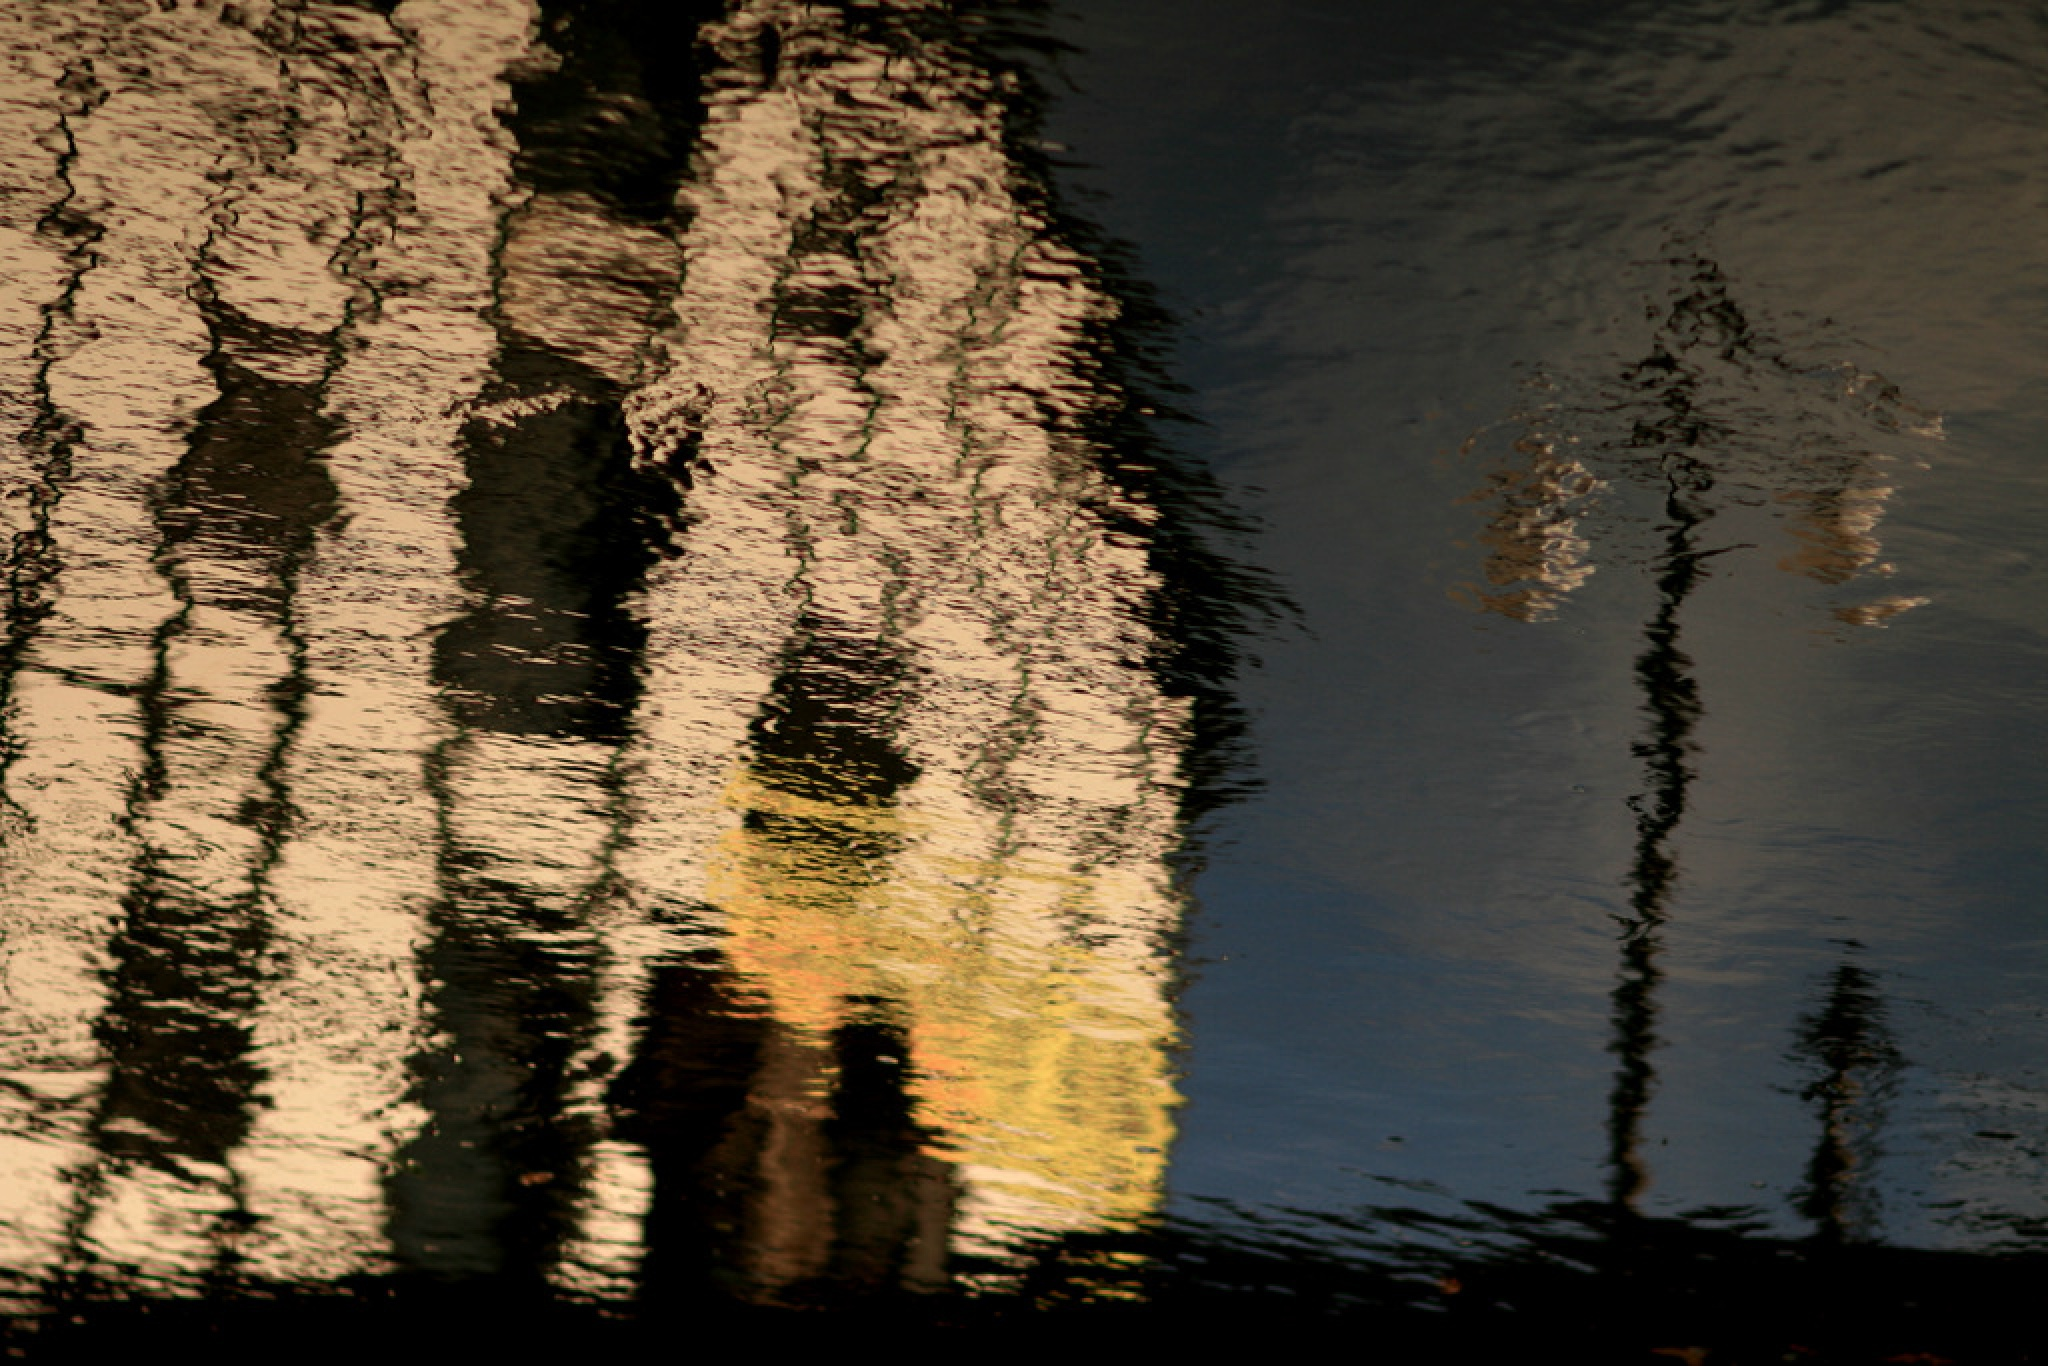 reflected at the water by JAKOKTO PAUKAS